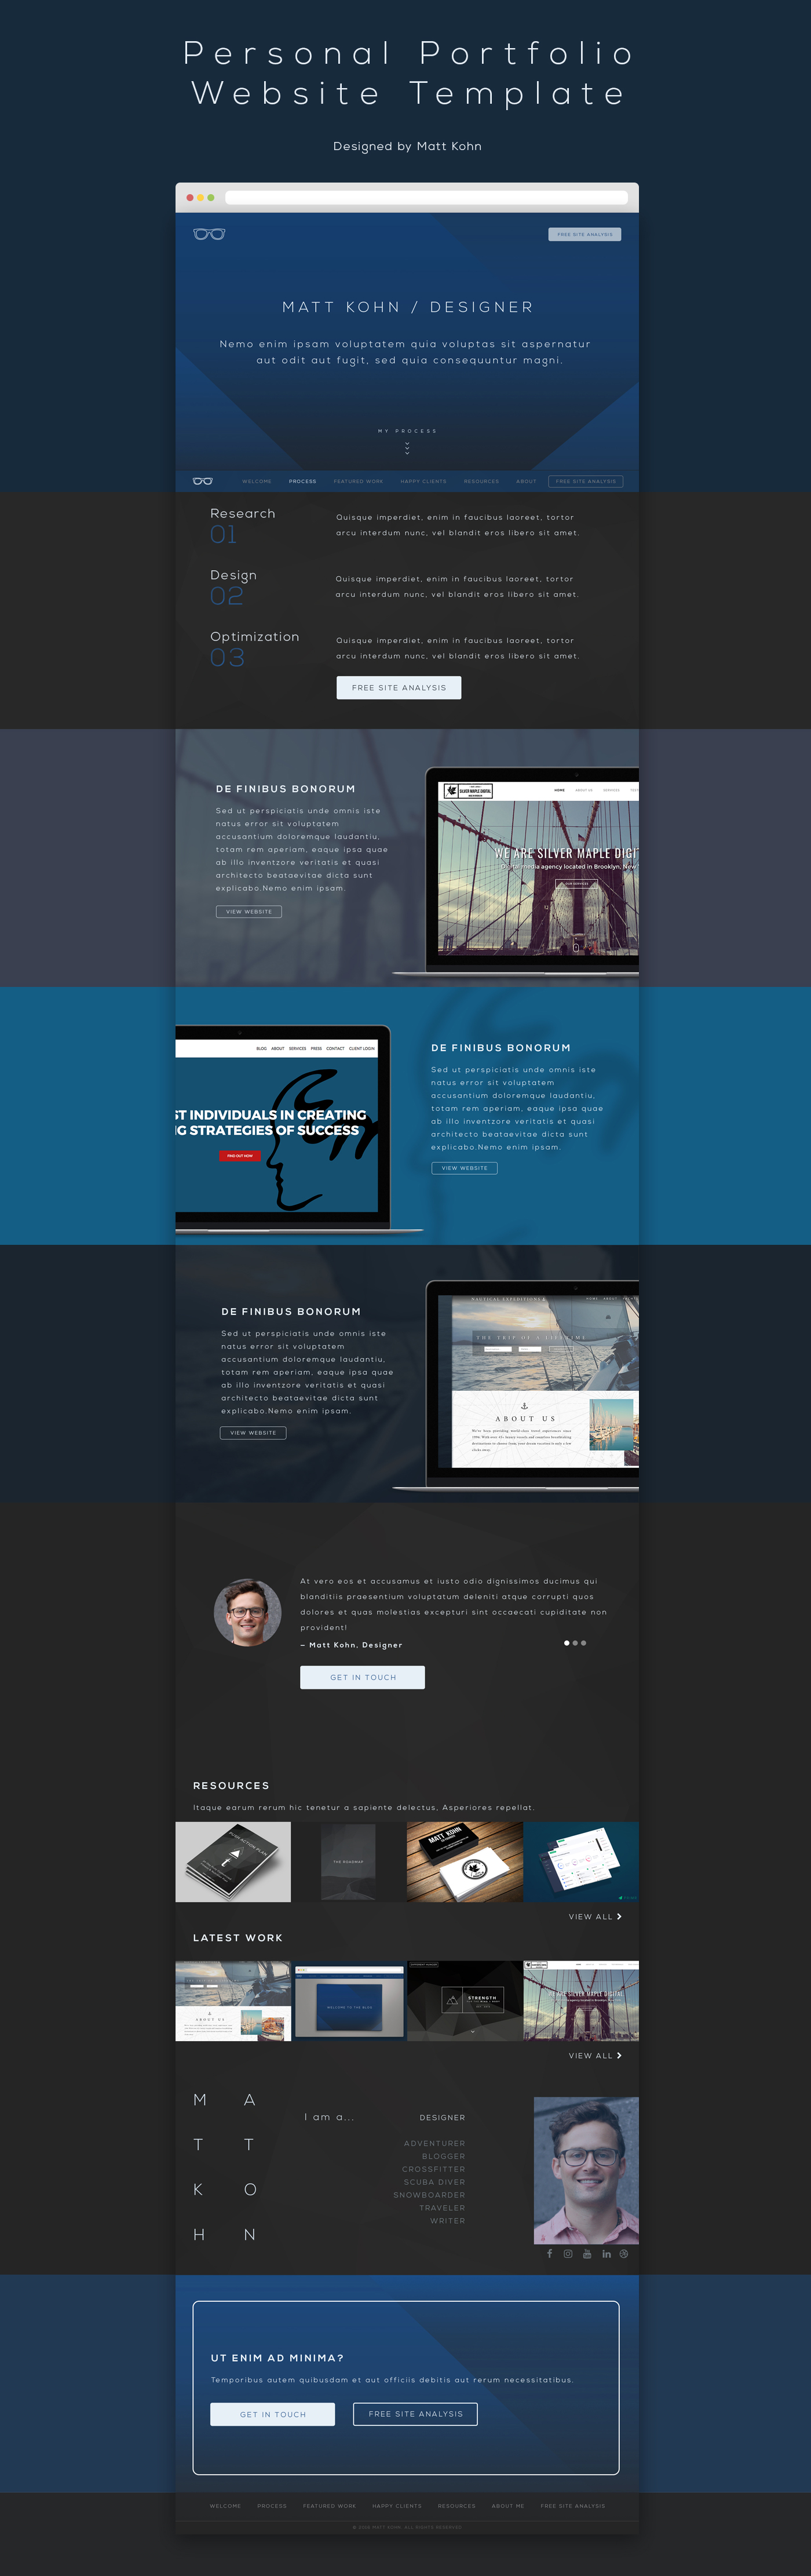 Free personal portfolio website template free design for Free portfolio website templates